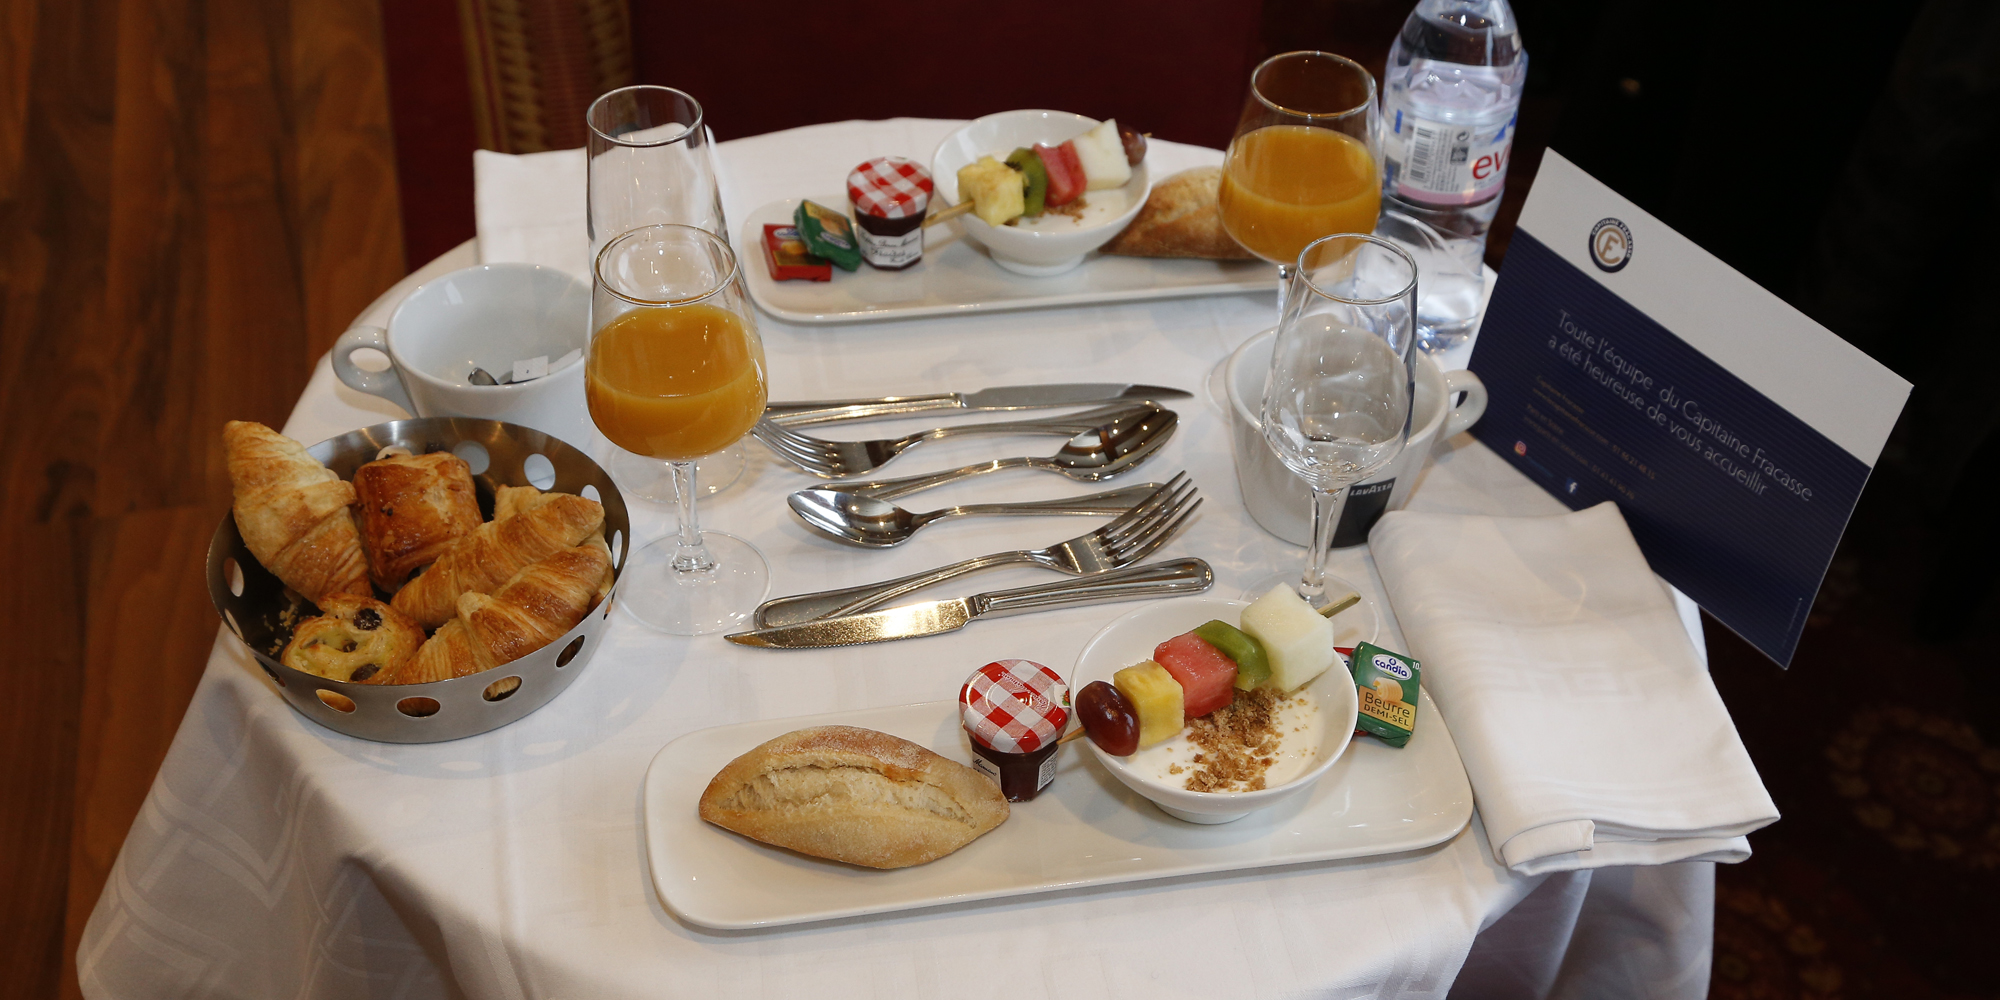 Brunch Bateau Le Capitaine Fracasse (75015 Paris)